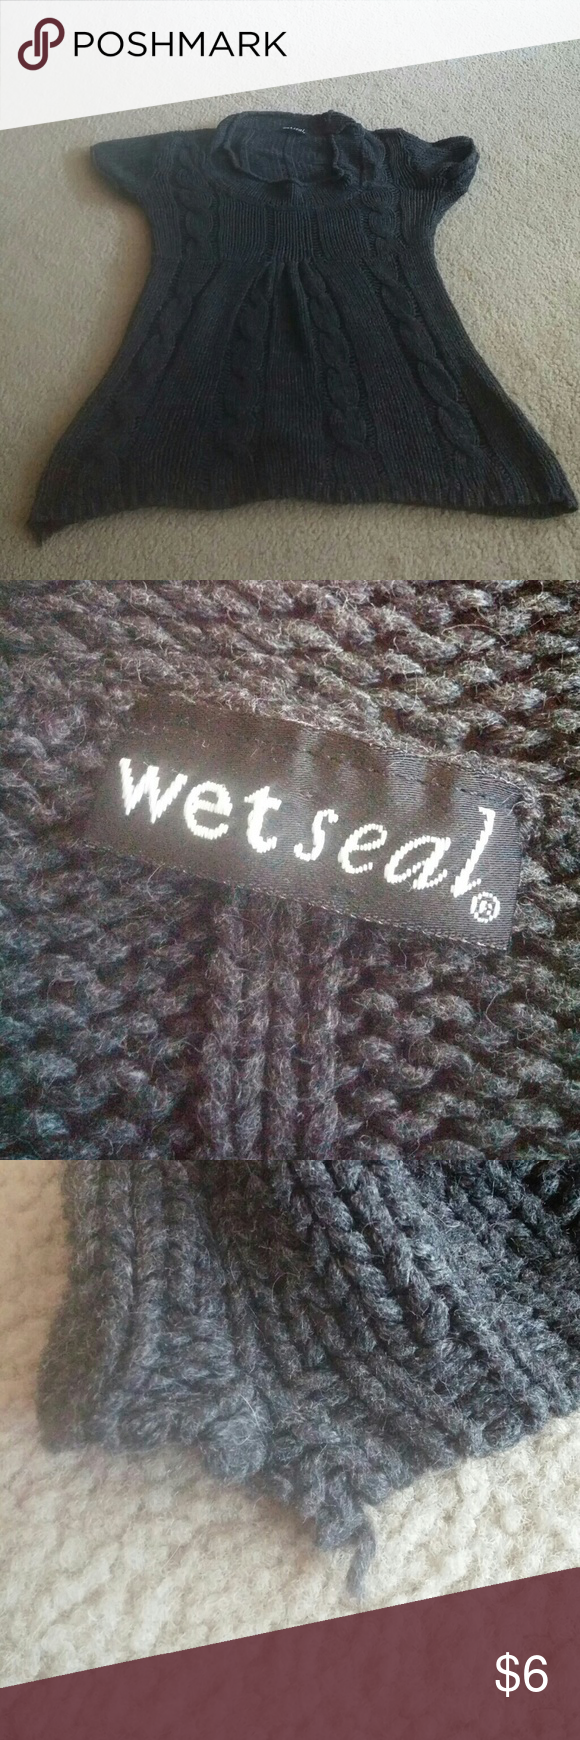 Wet Seal Short Sleeve Gray Sweater No trades! Gently used. Snagging at the bottom right corner and under the right armpit, as pictured. No tag but I believe this is a Junior's Large. This is the final price due to seller fees. Wet Seal Sweaters